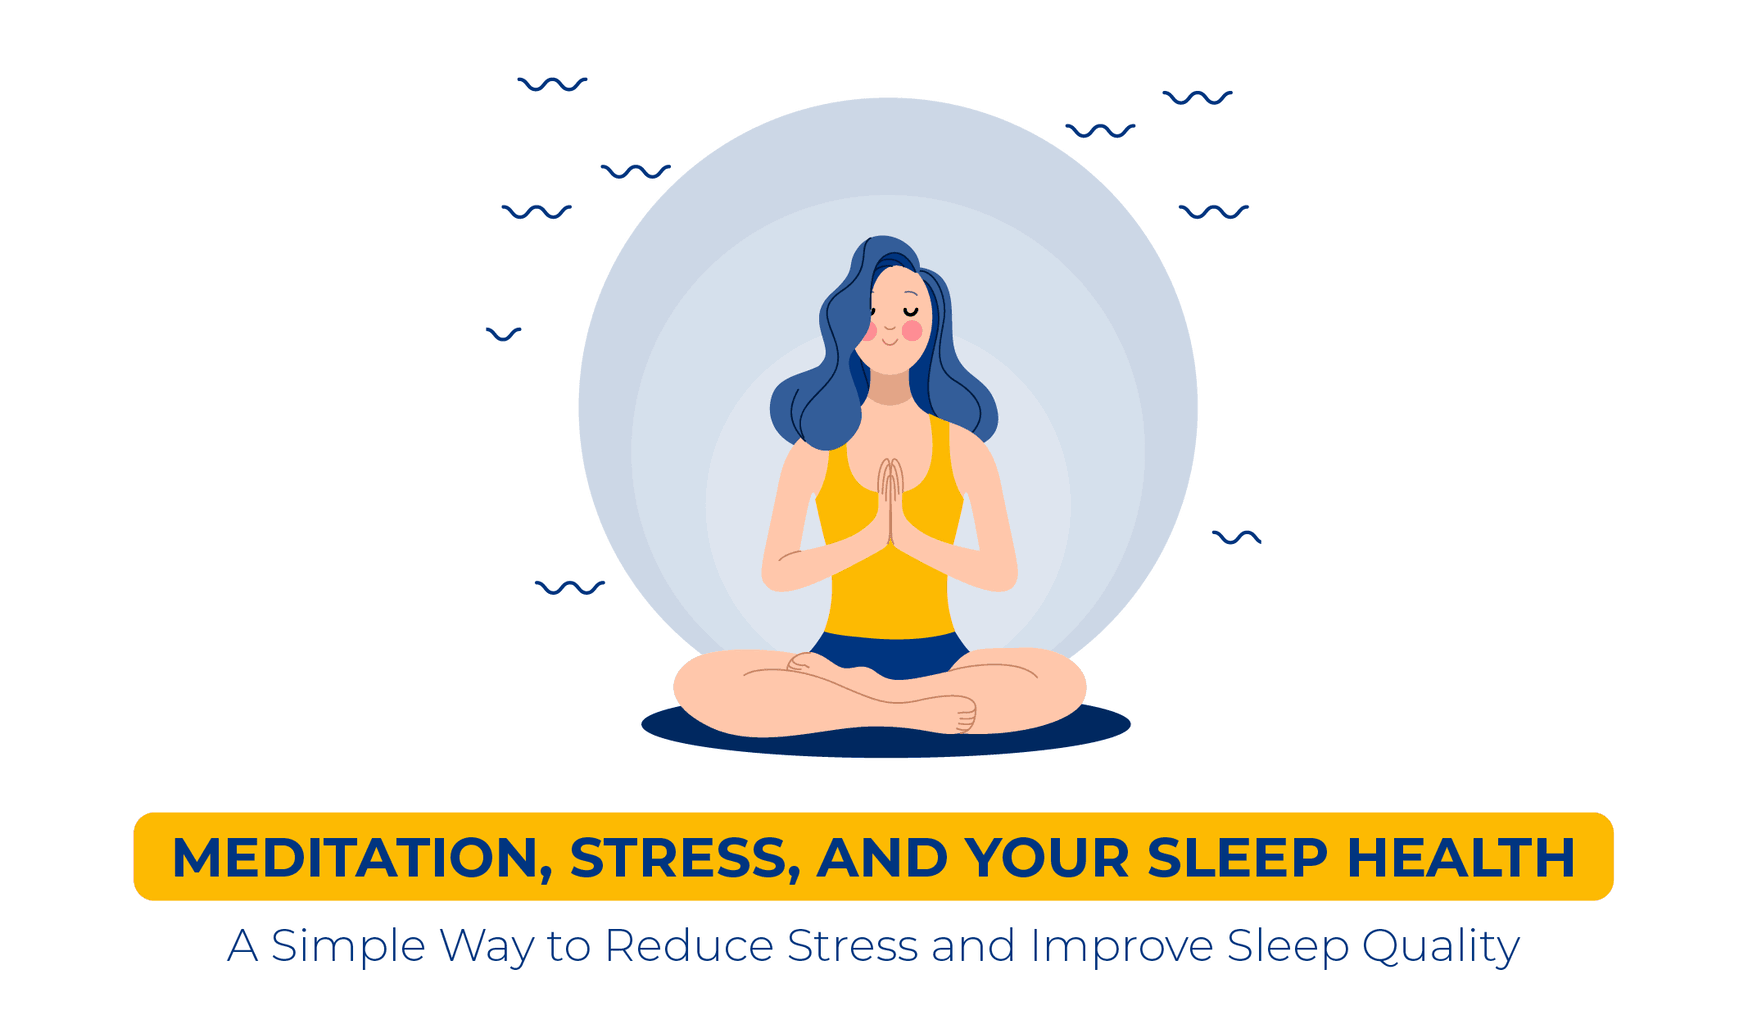 Meditation – A simplistic way to reduce stress and improve sleep